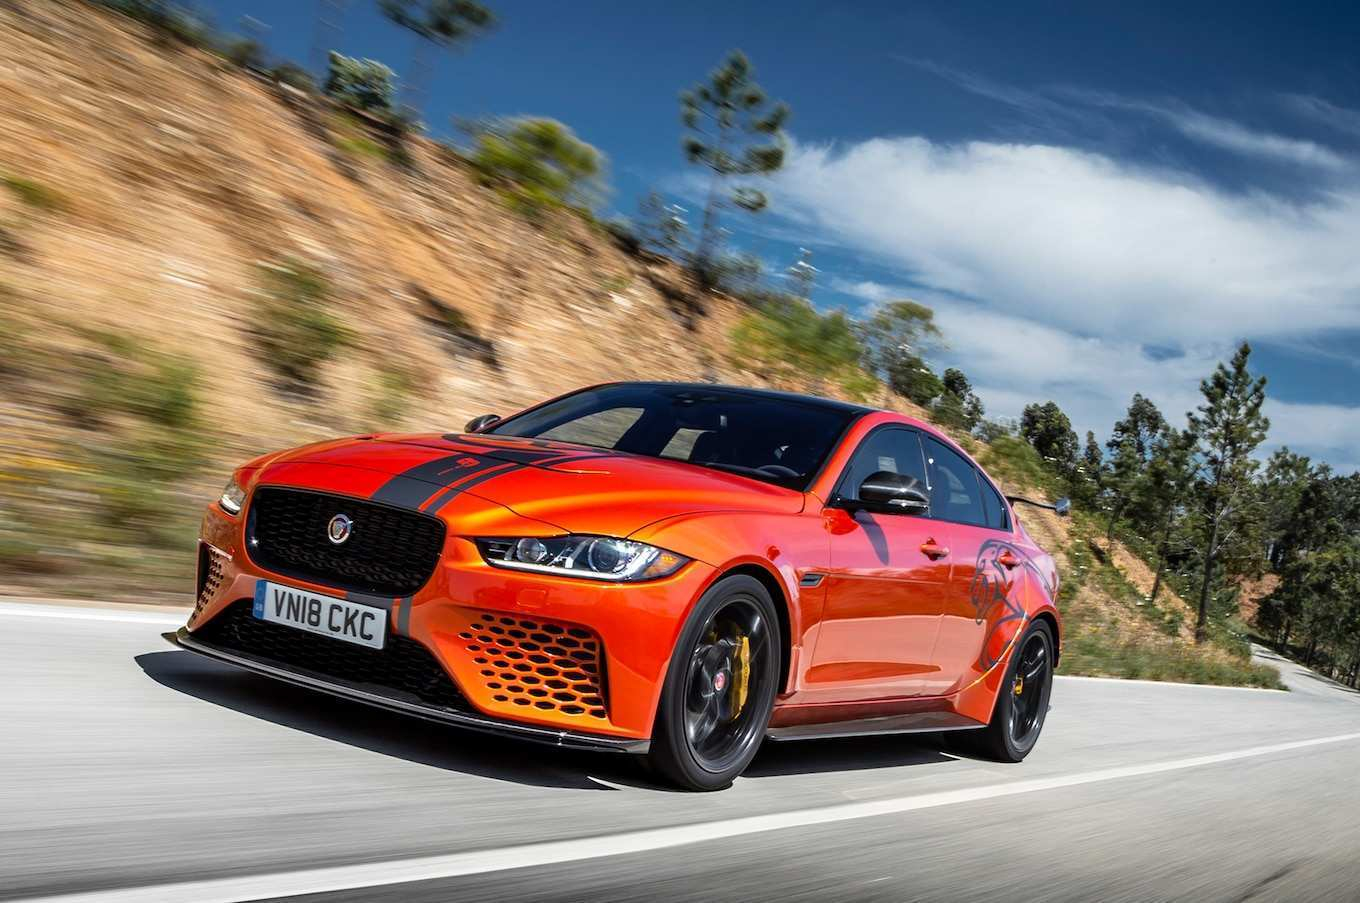 53 The 2019 Jaguar Xf V8 Specs Rumors with 2019 Jaguar Xf V8 Specs